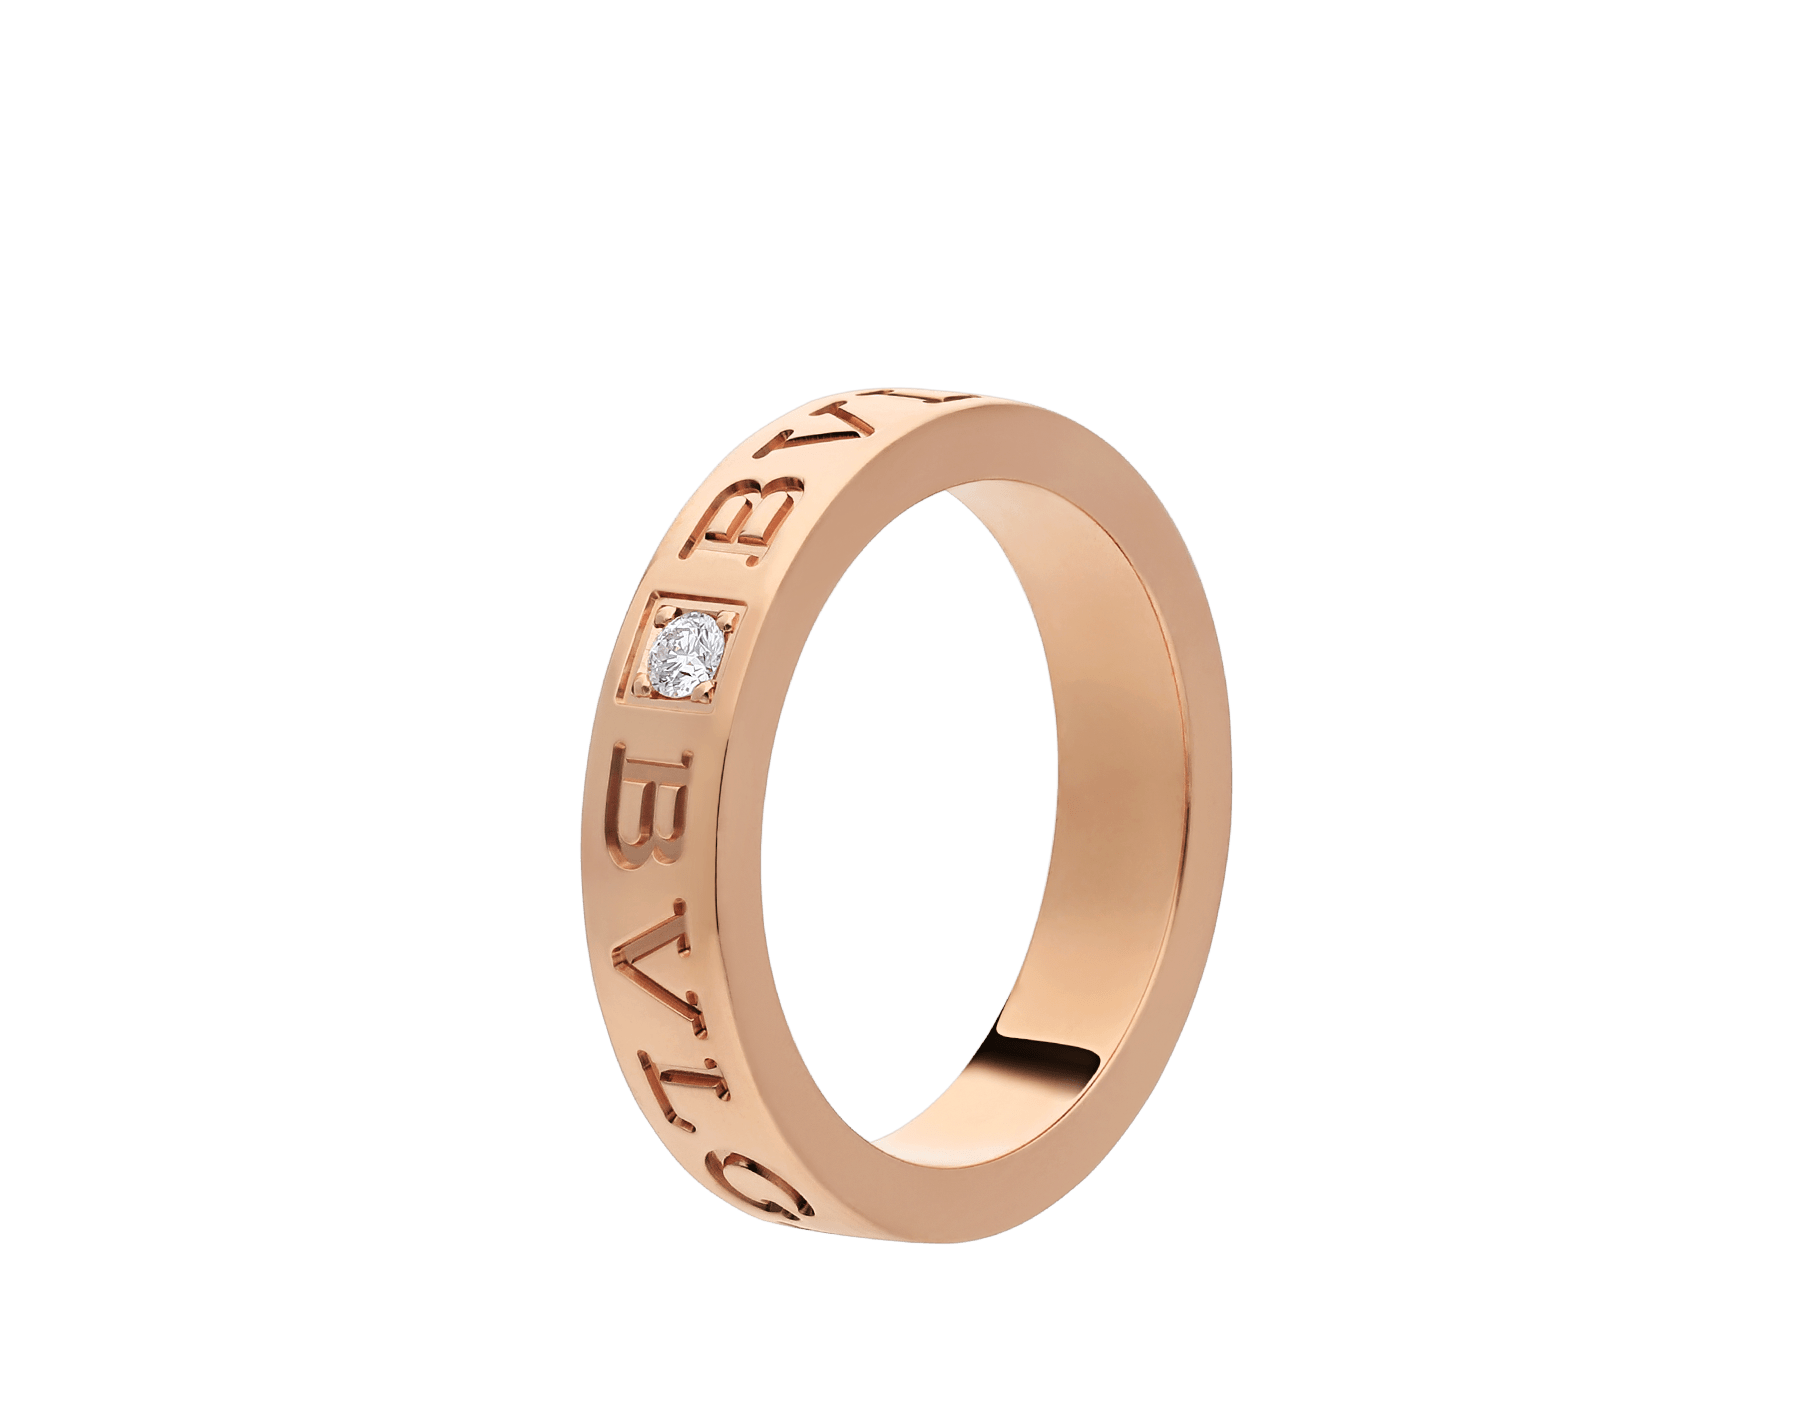 BVLGARI BVLGARI 18 kt rose gold ring set with a diamond AN854185 image 1